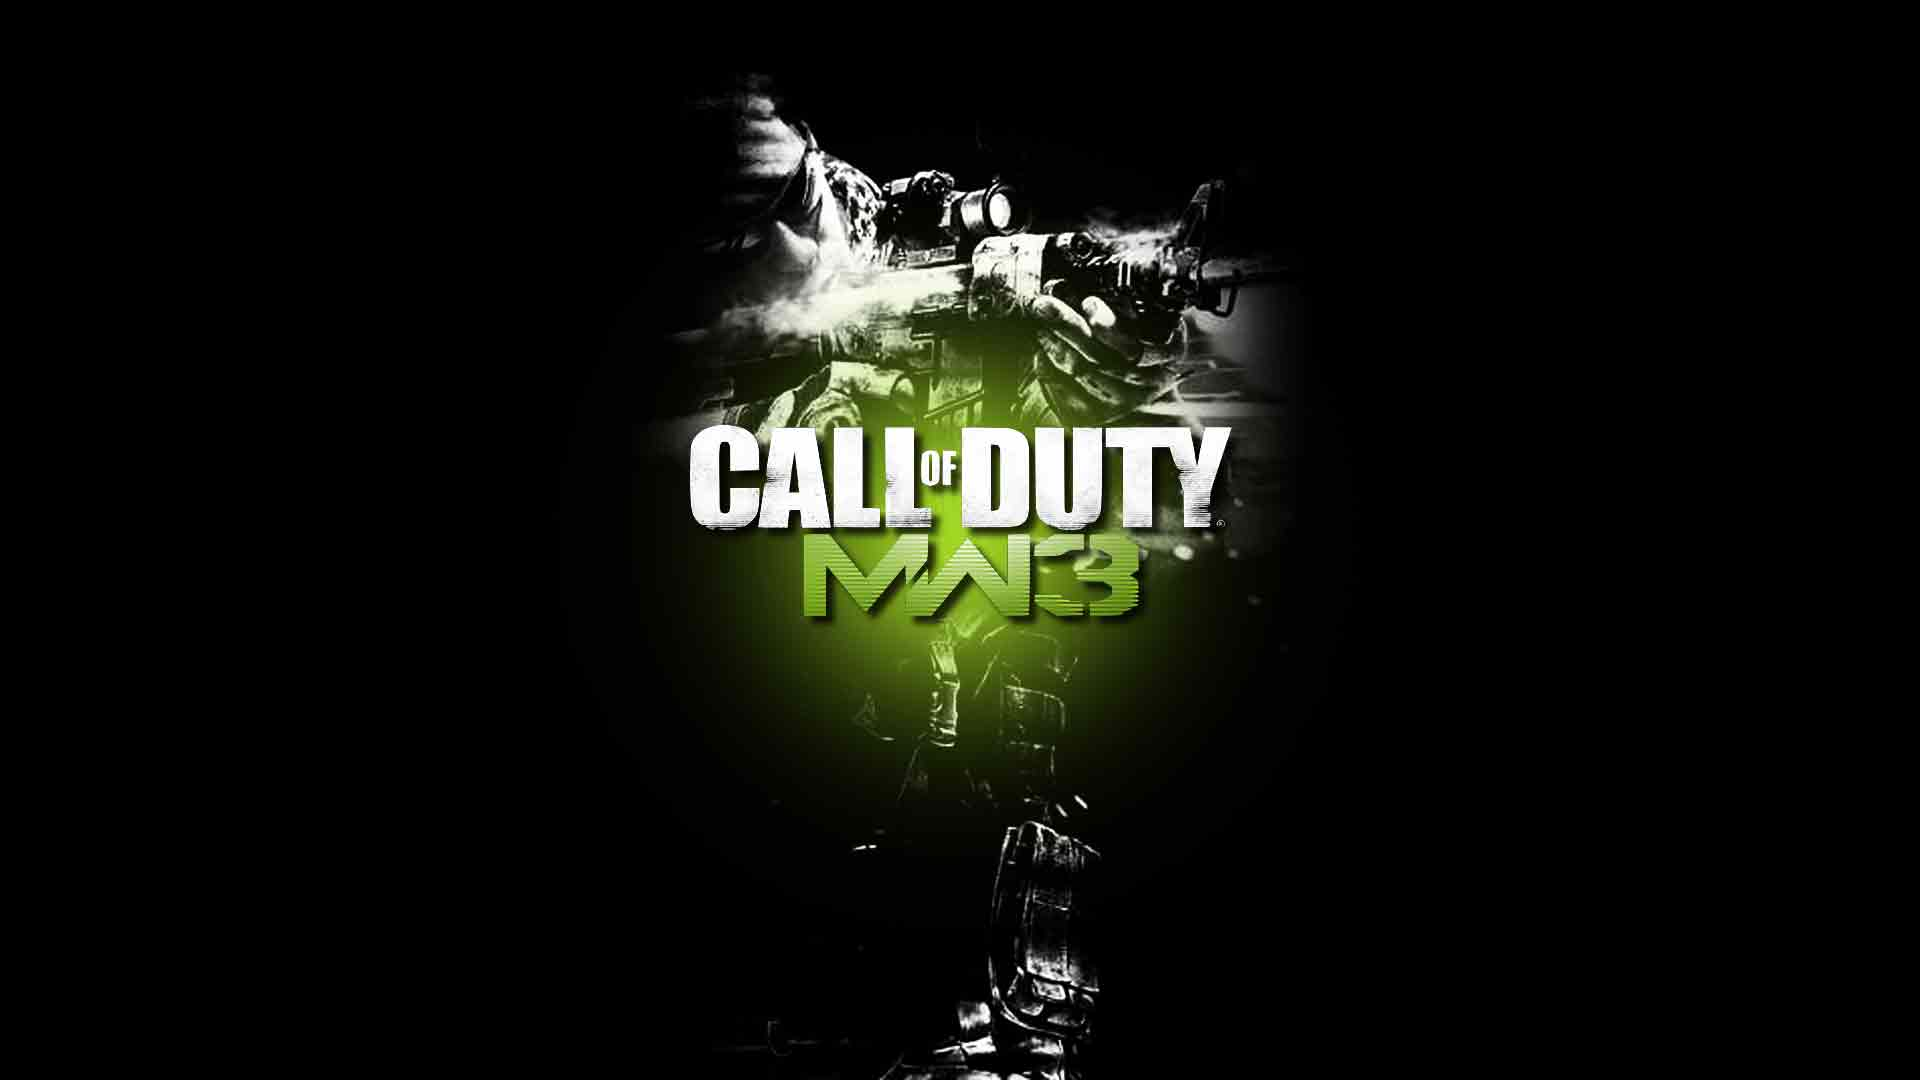 File Name: #858795 MW3 HD Wallpapers | Backgrounds